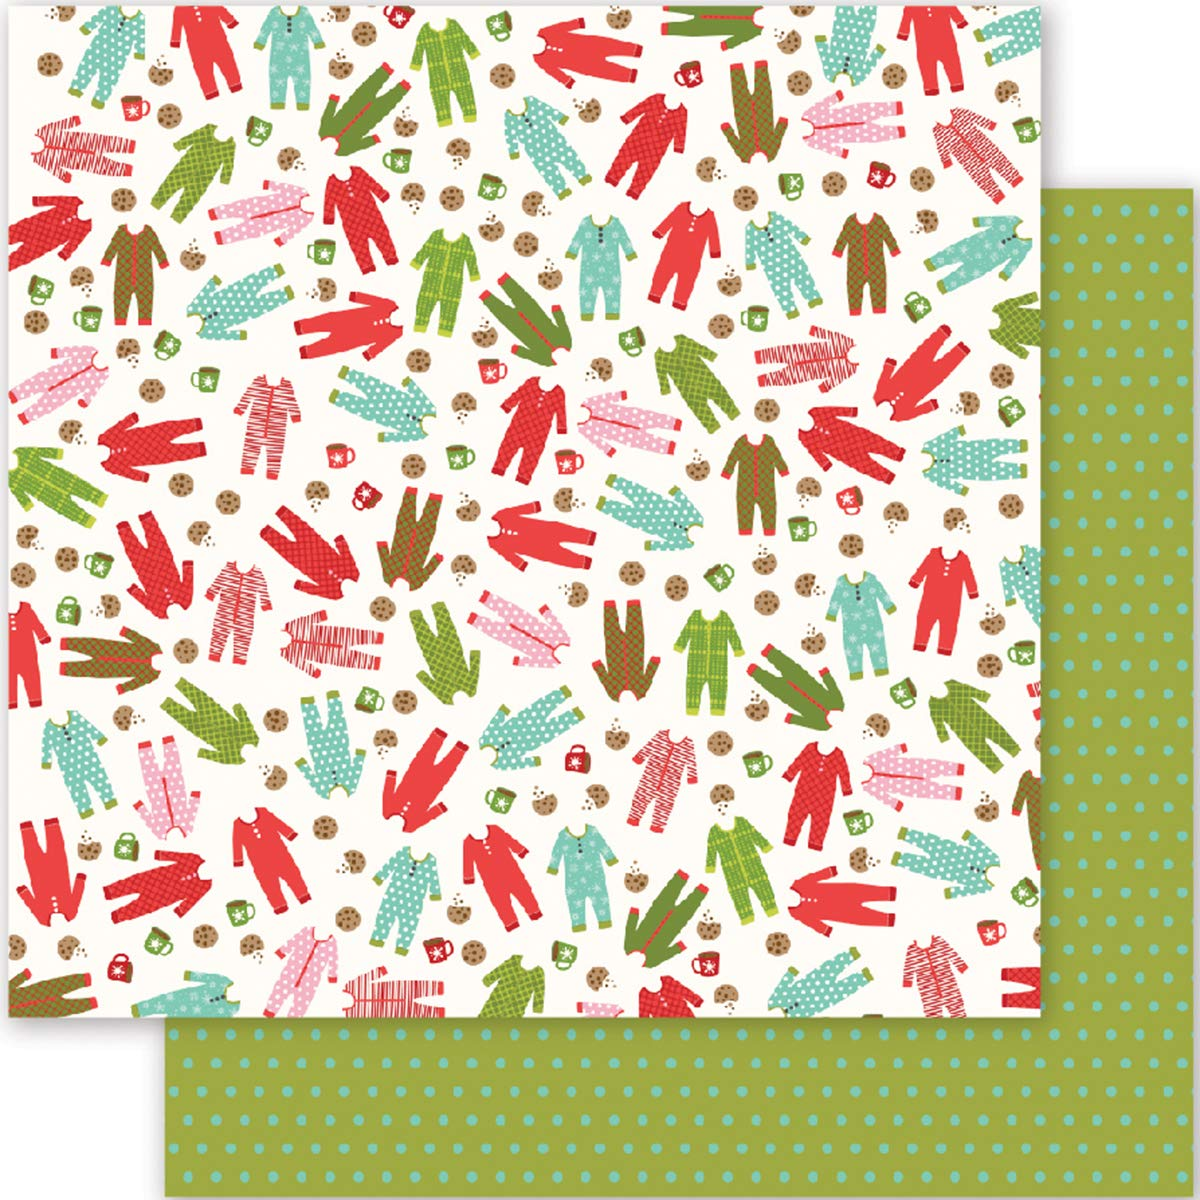 Pebbles Holly Jolly Collection Christmas 12 X 12 Double Sided Paper Pajama Party (3 Pack)